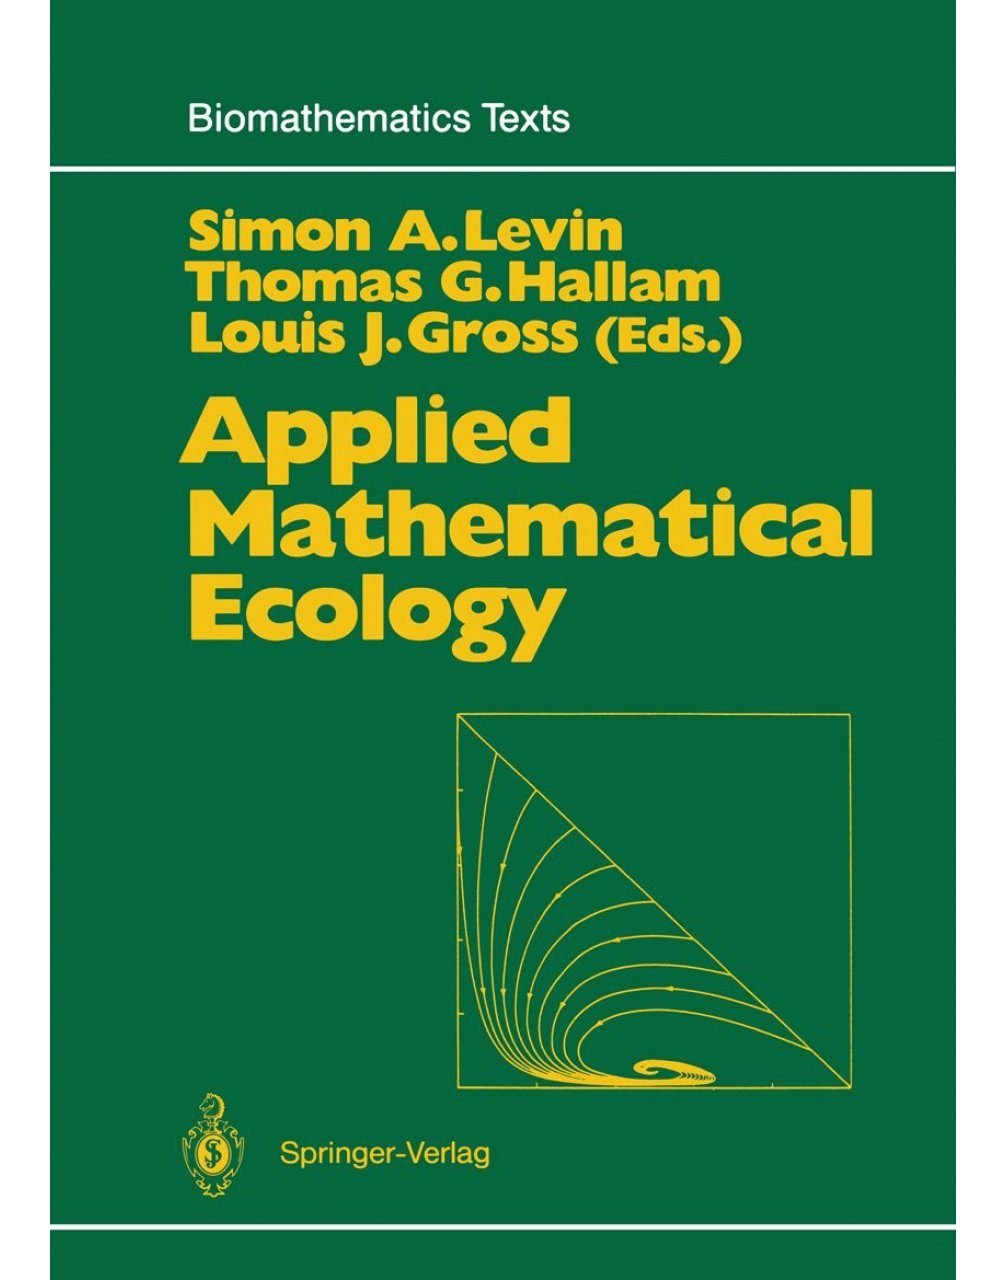 Applied Mathematical Ecology